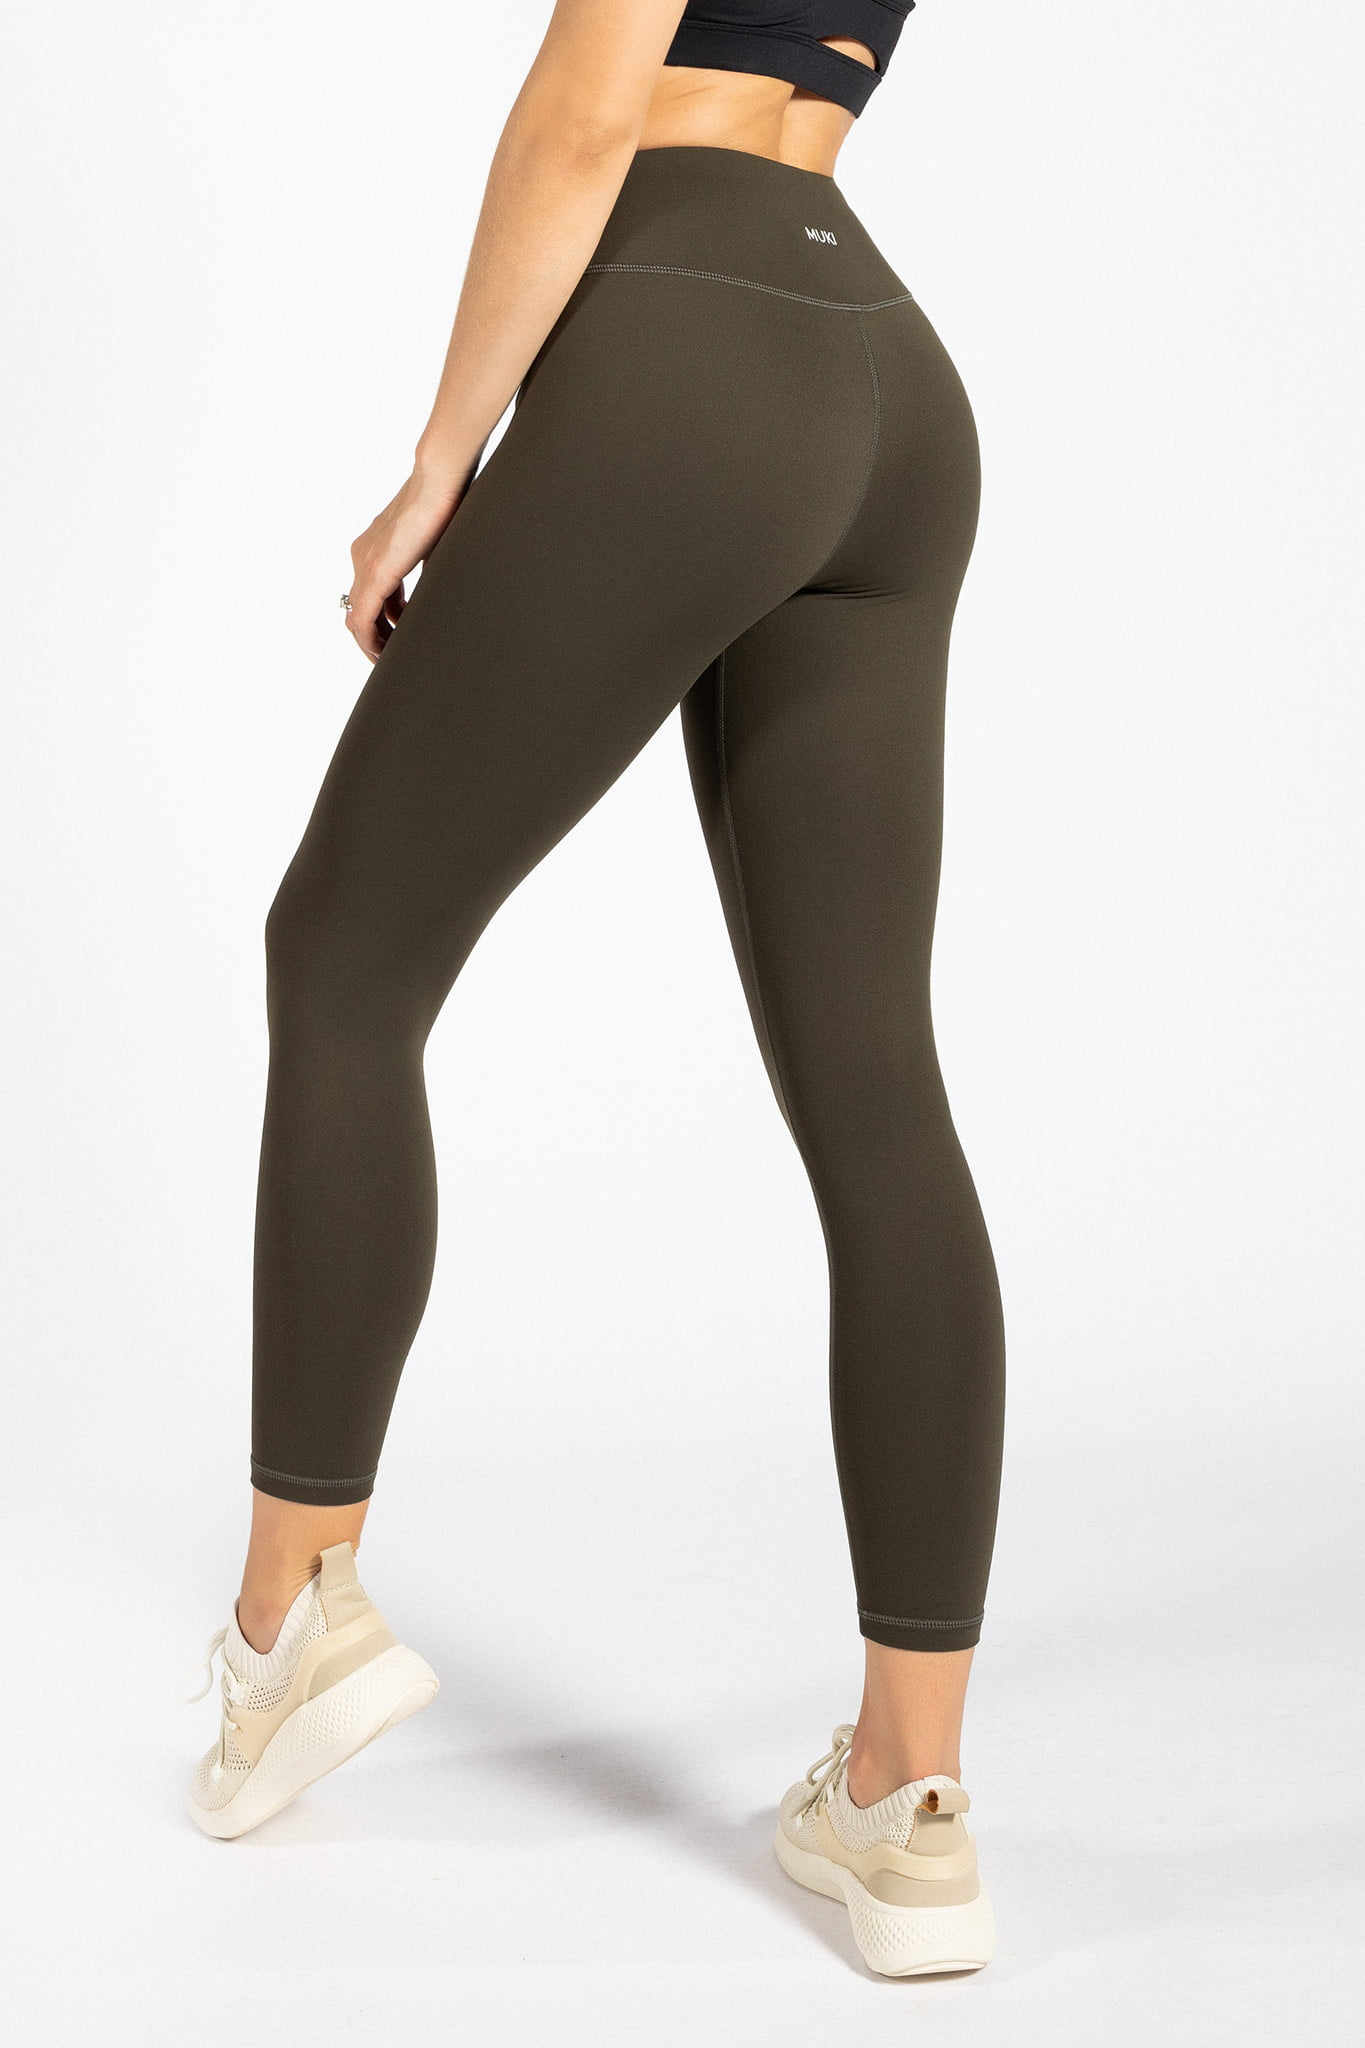 fit model wearing high-waisted yoga pant in dark olive colour